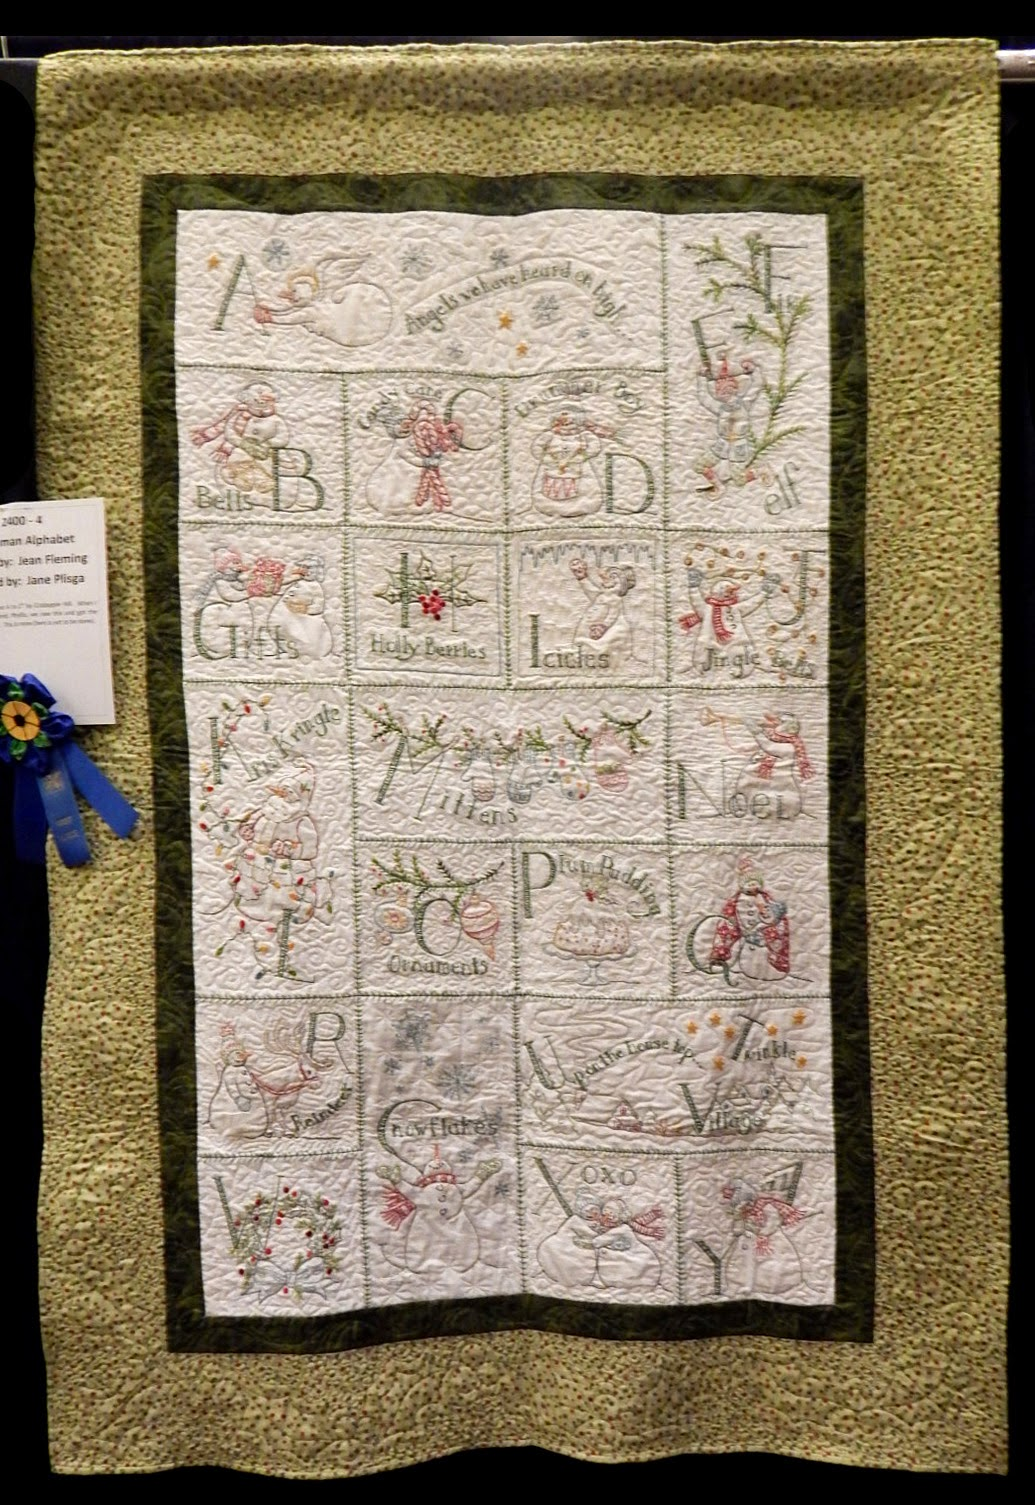 Check Out The Great Quilting Job Jane Plisga Did On Thi Quilt It's Often  Difficult To Quilt Atop Embroidery And Not Destroy The Integrity Of The  Design,